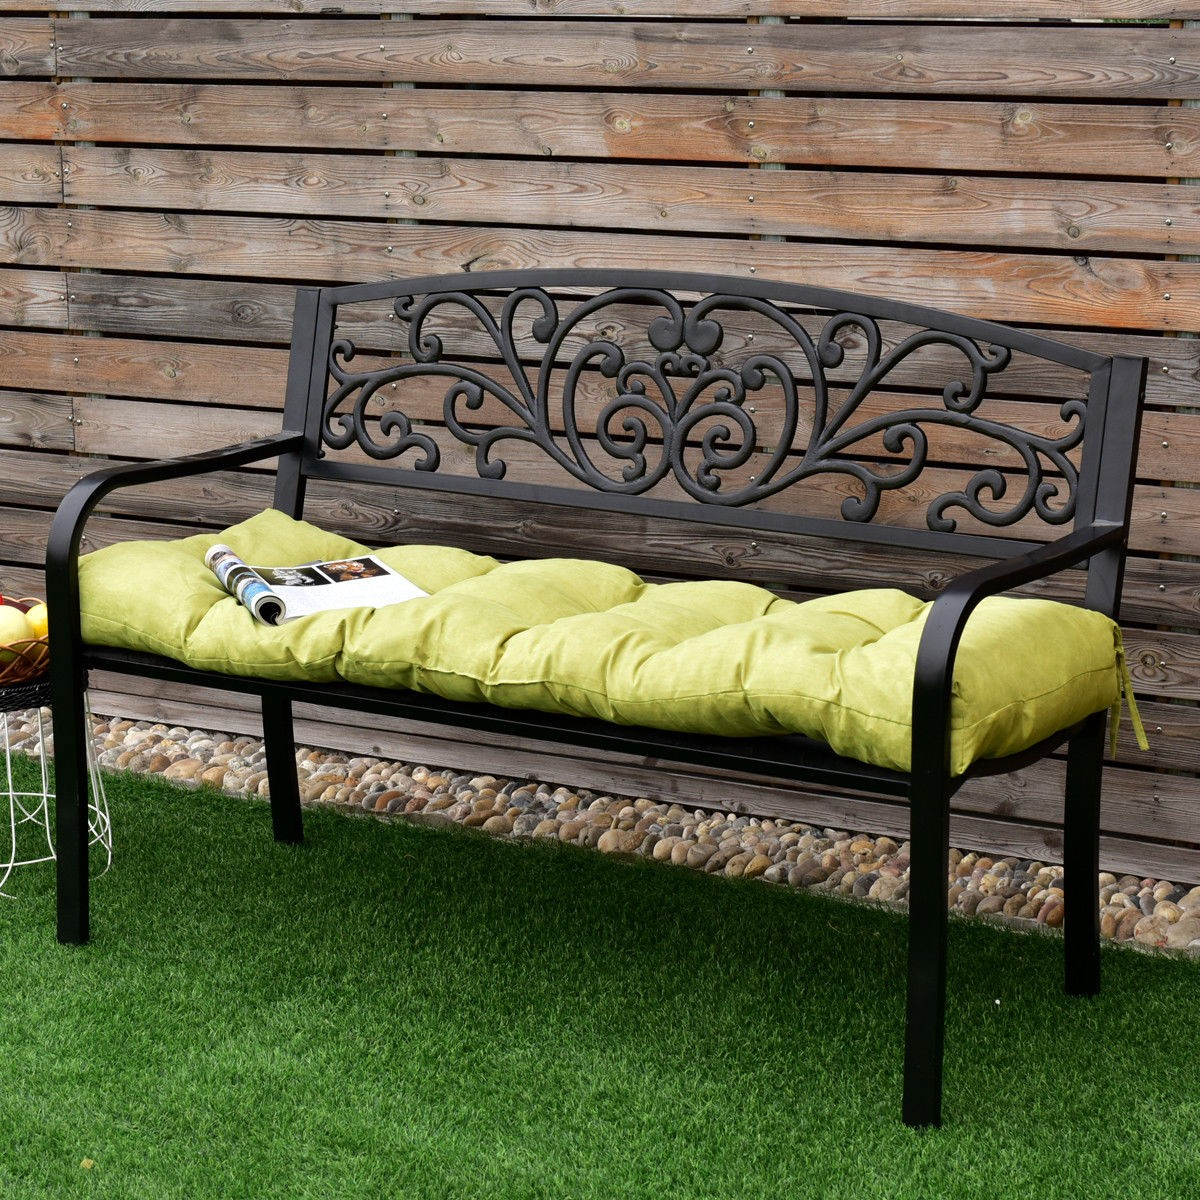 51 Quot Indoor Outdoor Swing Glider Sit Bench Cushion Chair